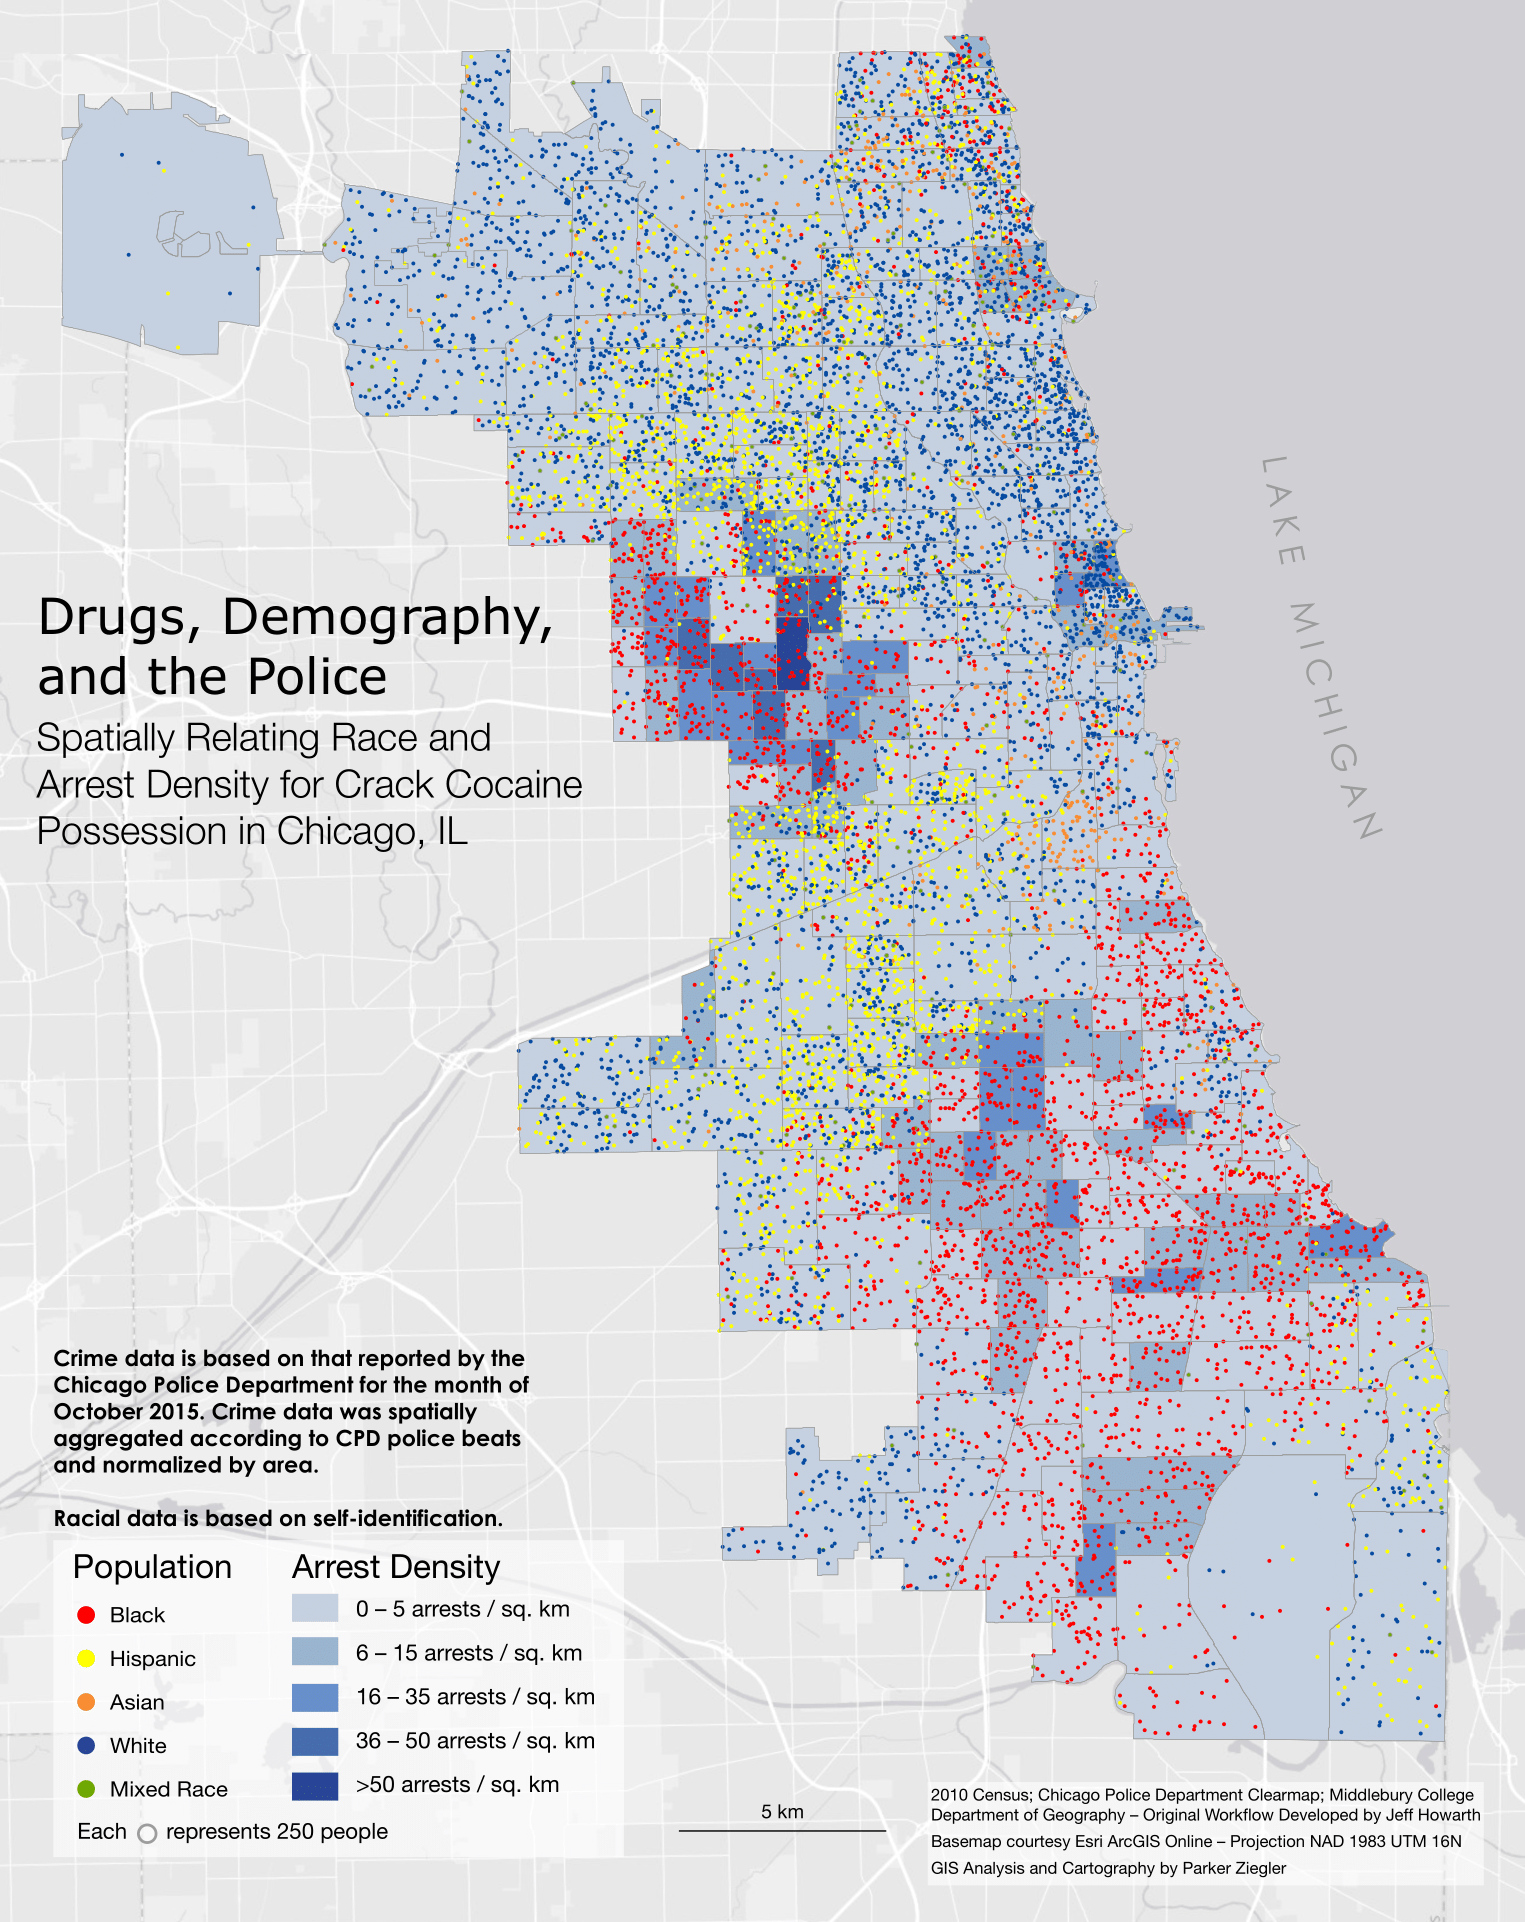 A map spatially correlating race and arrest density for possession of crack cocaine in Chicago, IL.